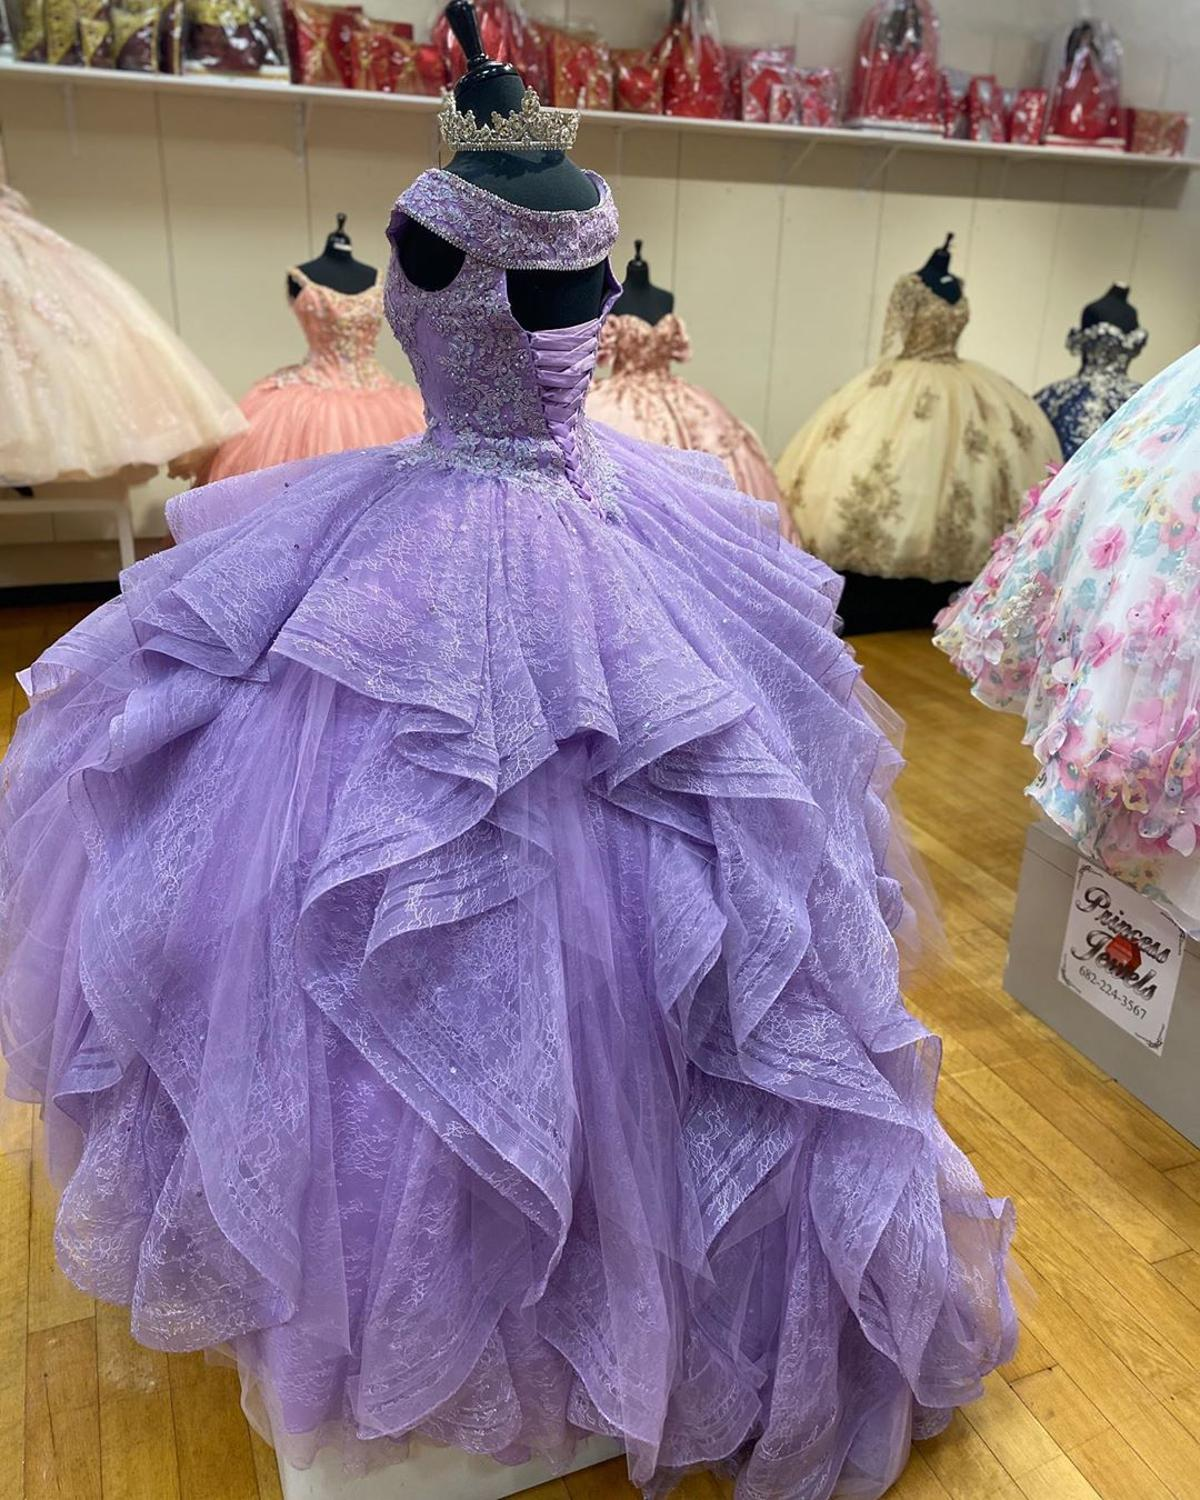 lavender quinceanera dress extra puffy,places to fix quinceanera dress,vintage lace dress for quinceanera,sexy princess lace quinceanera dress,lace quinceanera dress,off shoulder quinceanera dress,ruffled skirt quinceanera dress,quinceanera dress lace puffy elegant,2021 quinceanera dress,